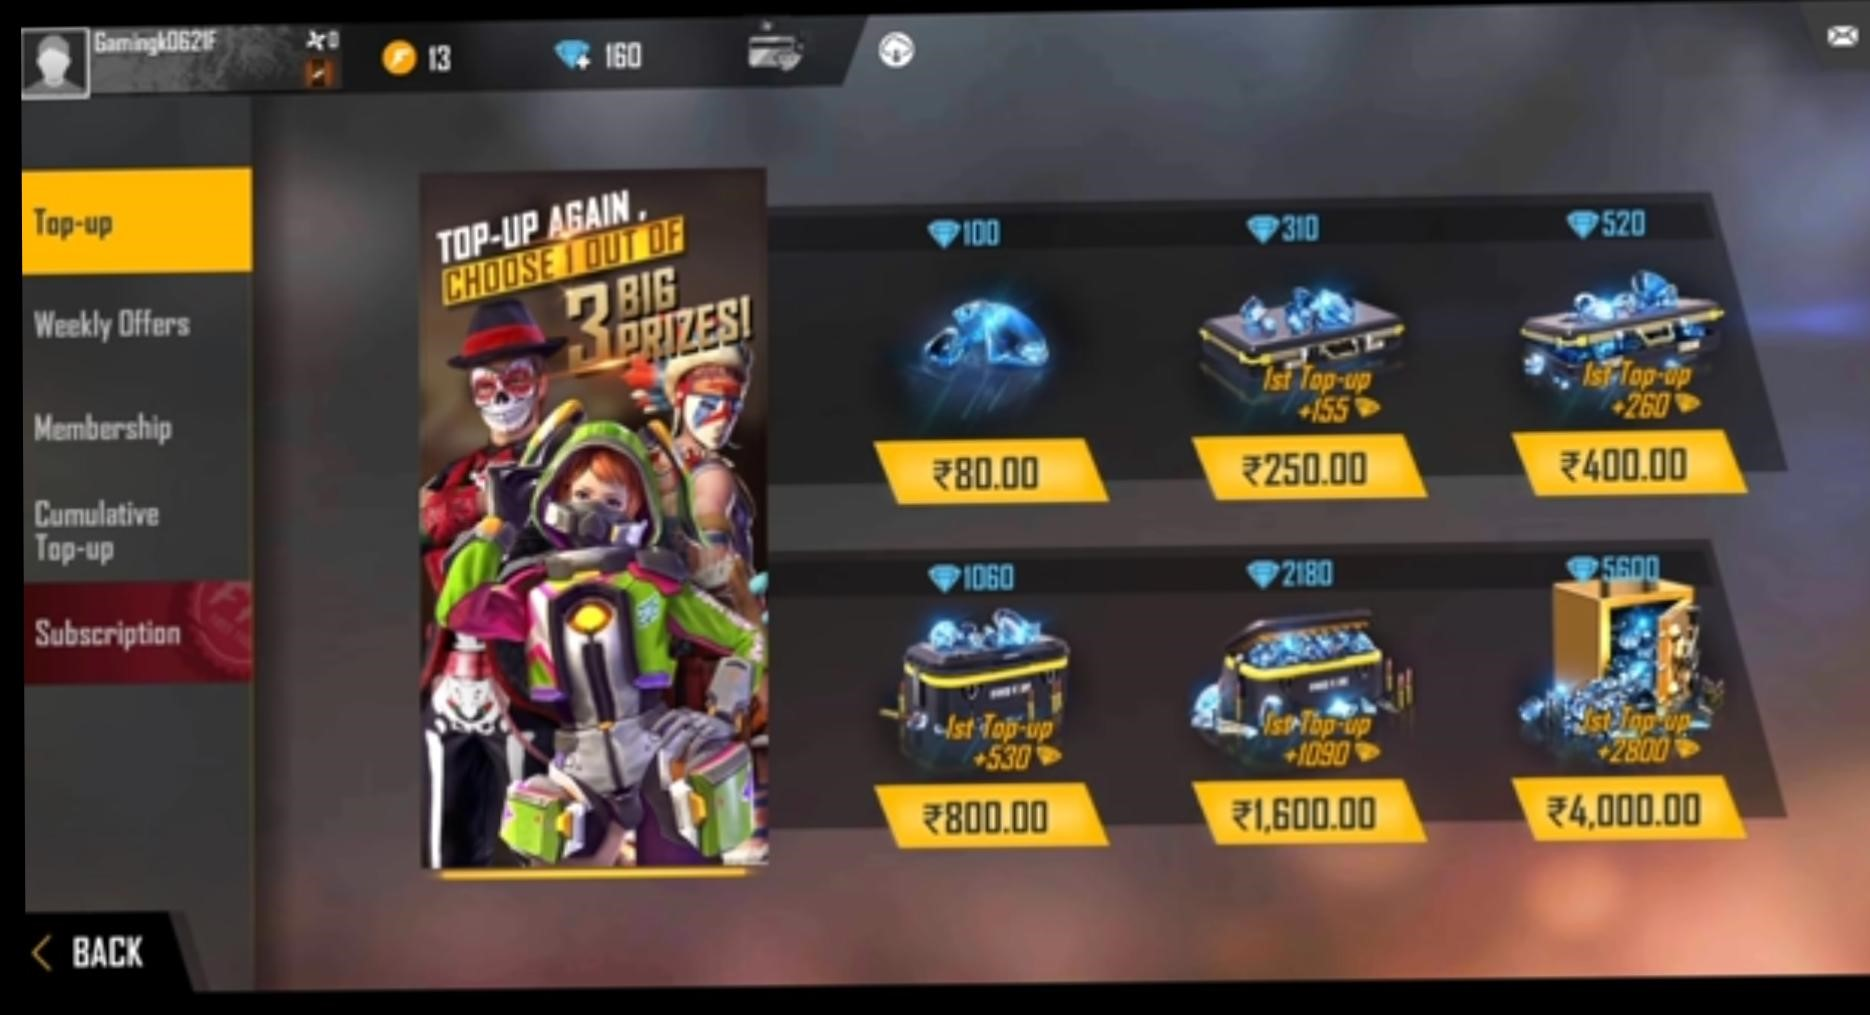 How To Get Dj Alok Character 2021 In Free Fire Free Links To Claim Reward